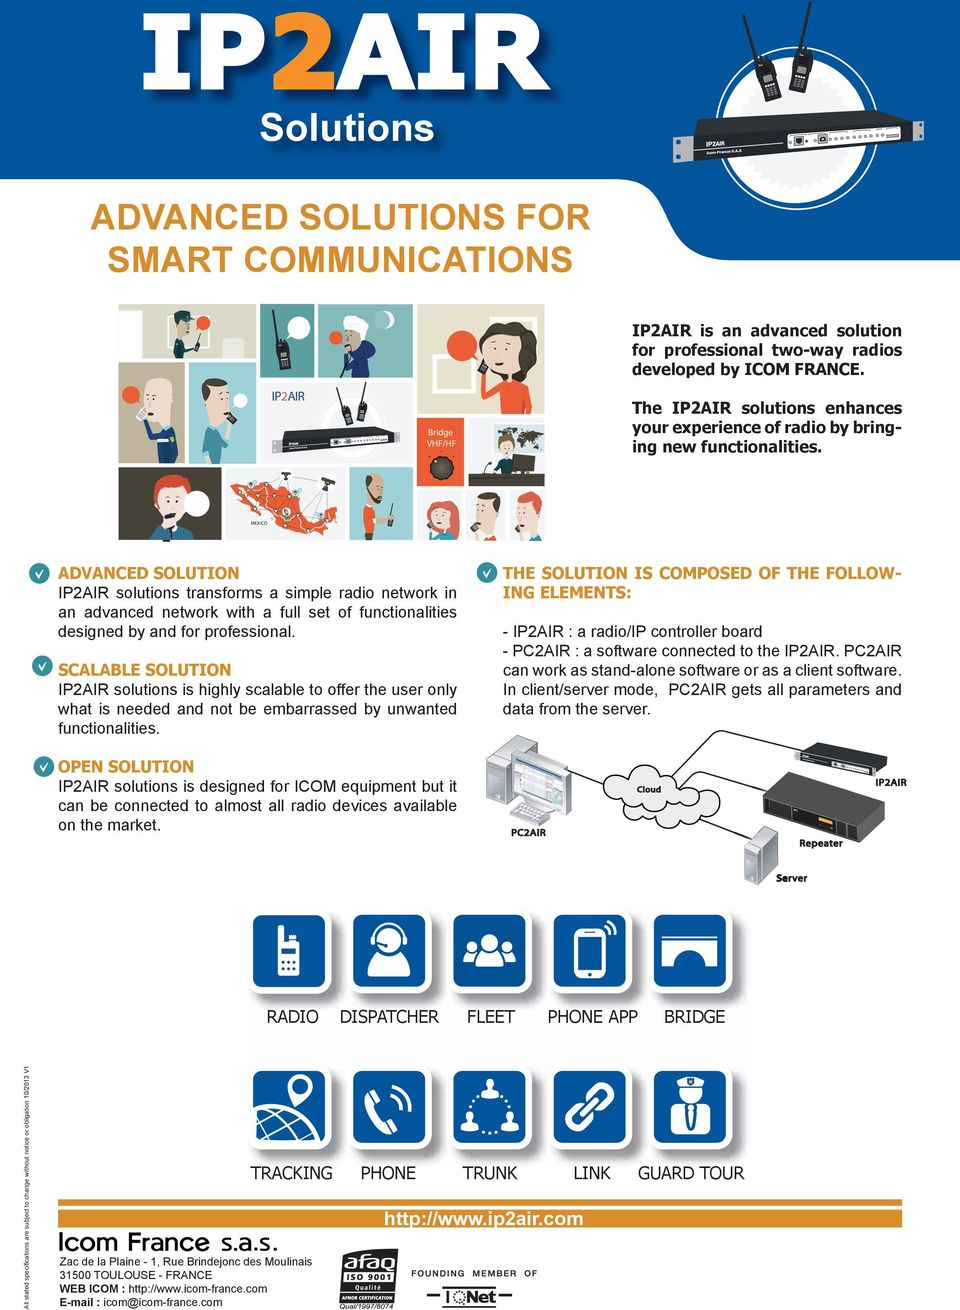 MEXICO ADVANCED SOLUTION IP2AIR solutions transforms a simple radio network in an advanced network with a full set of functionalities designed by and for professional.